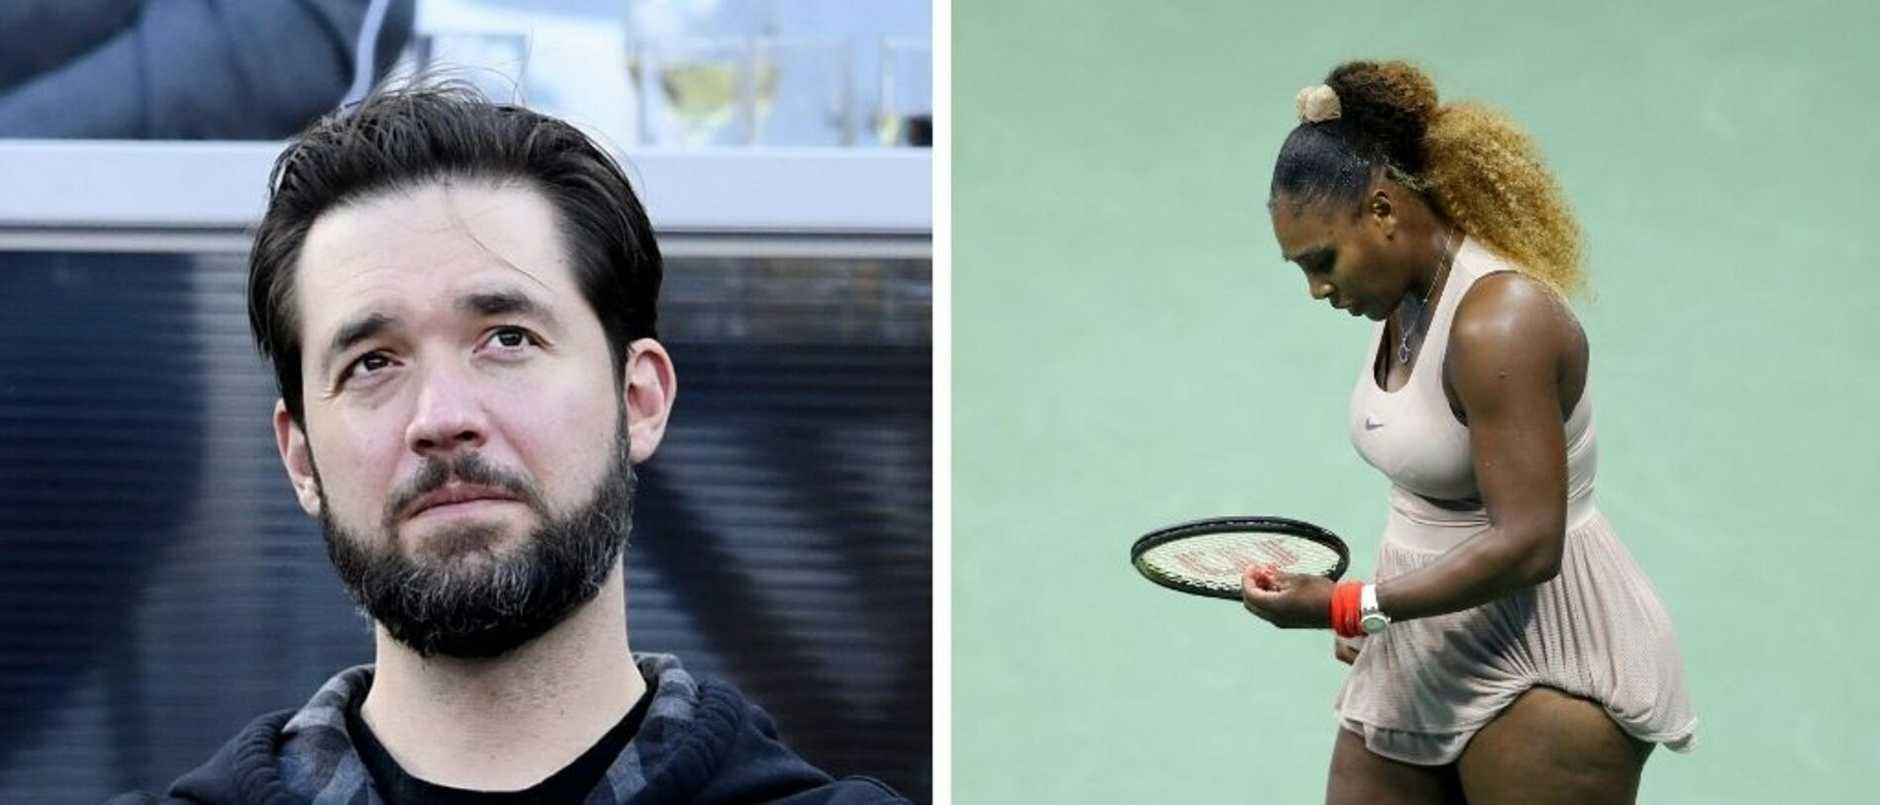 Outrageous comments by a tennis legend about Serena Williams' weight have drawn an angry response from her husband.